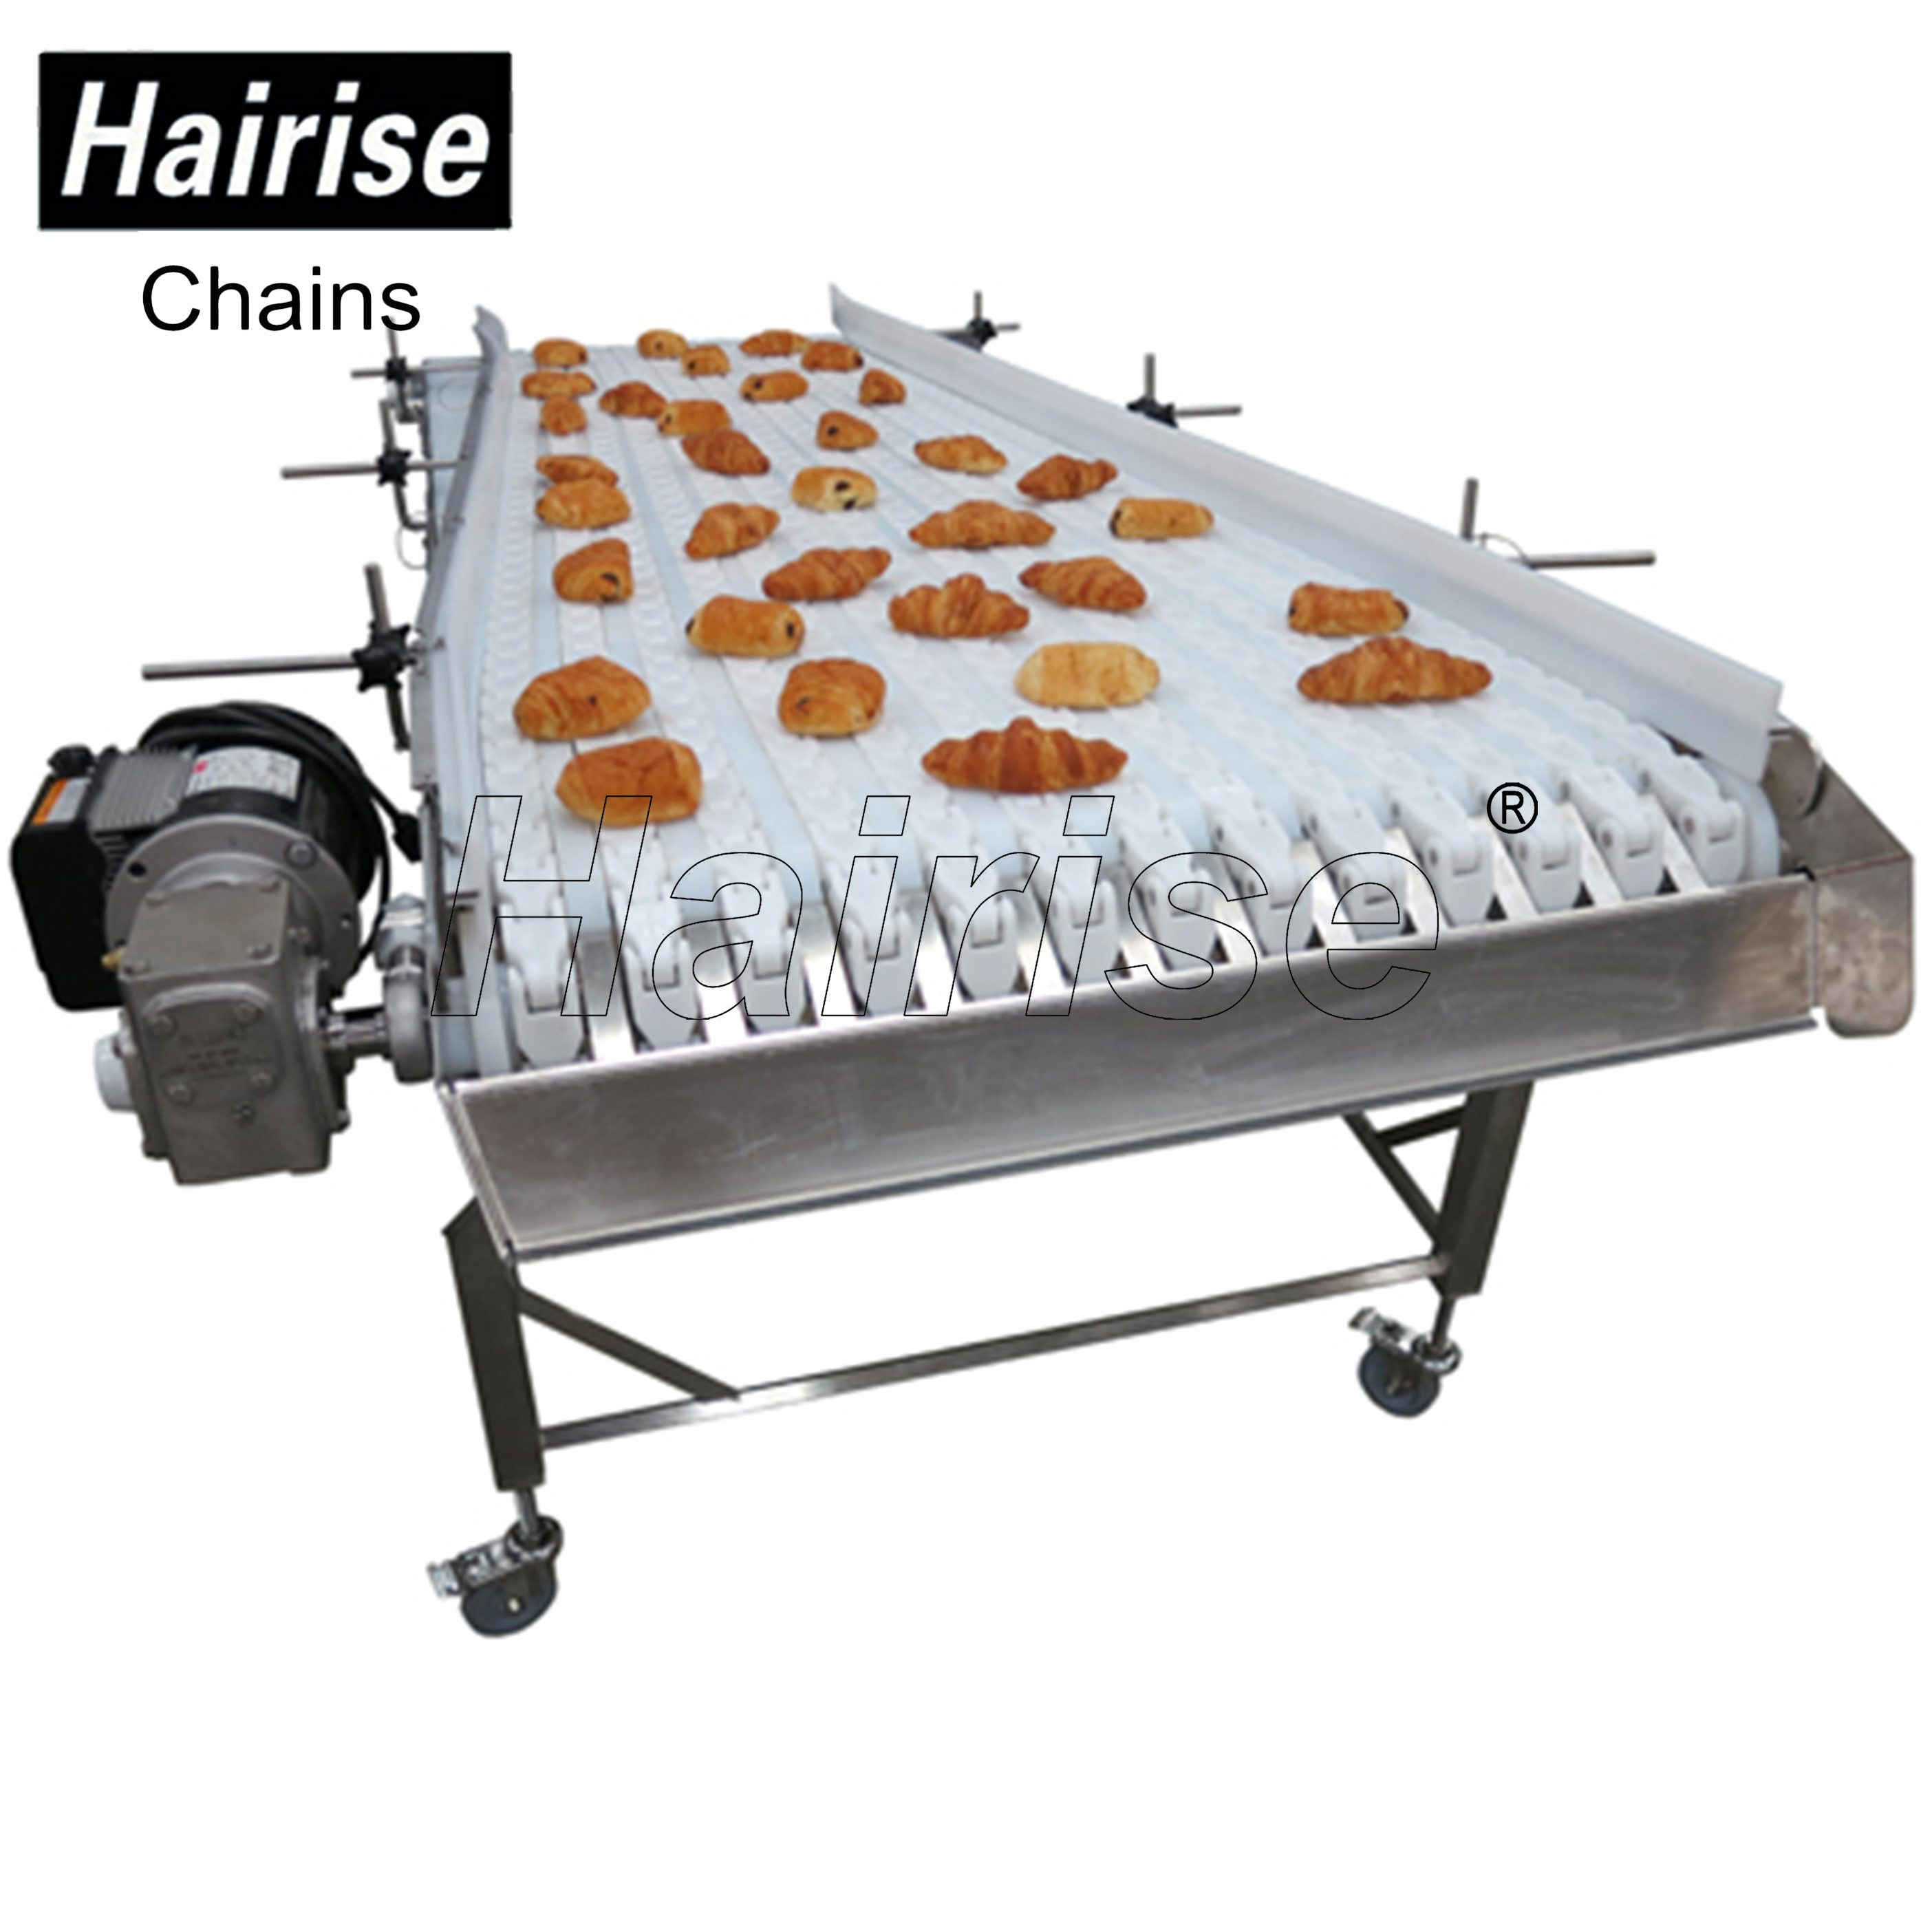 Hairise Straight Conveyor for Bread Industry(or Other Food)